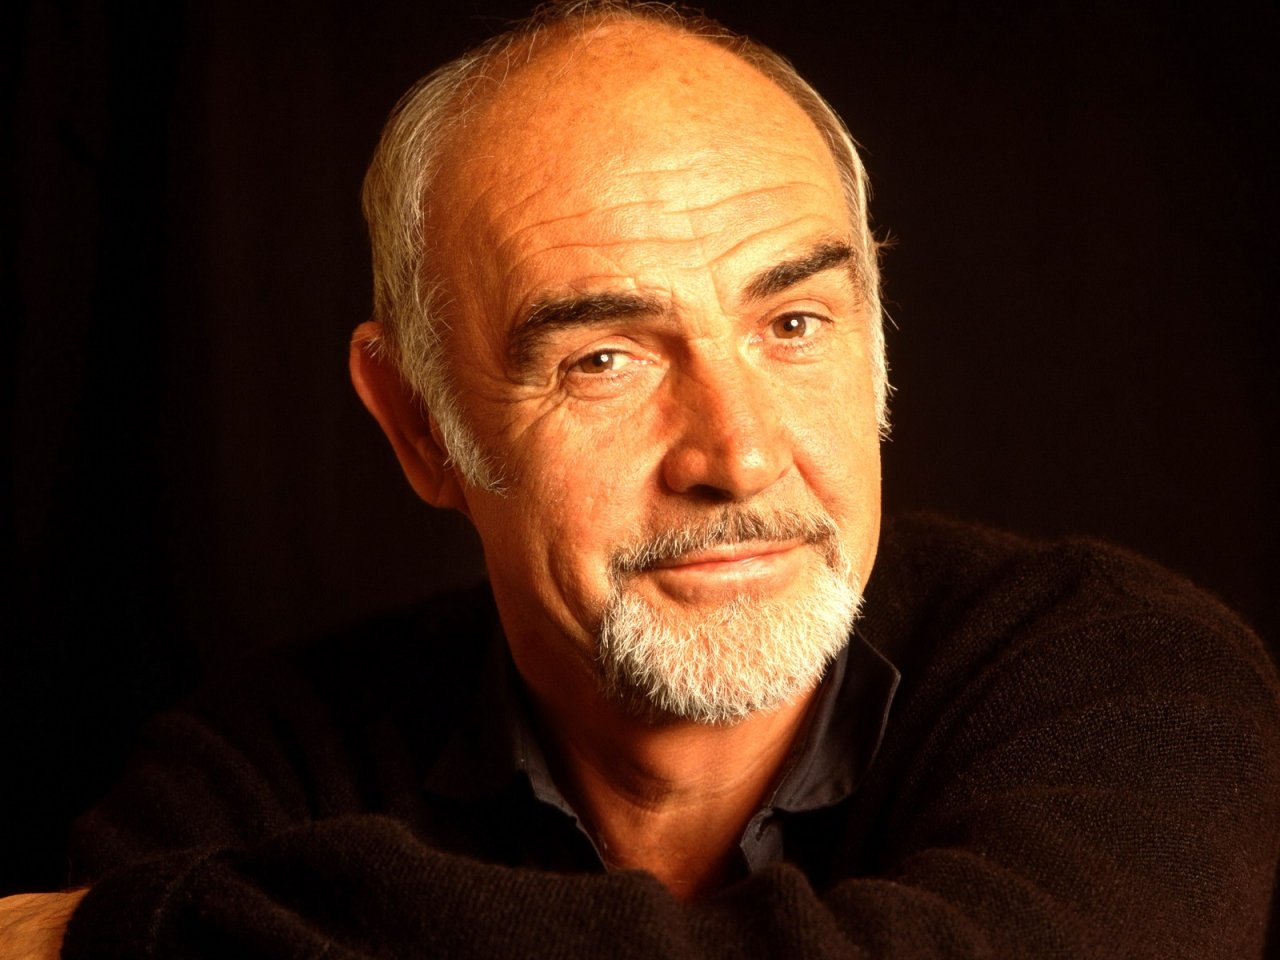 ... Sean Connery; Sean Connery